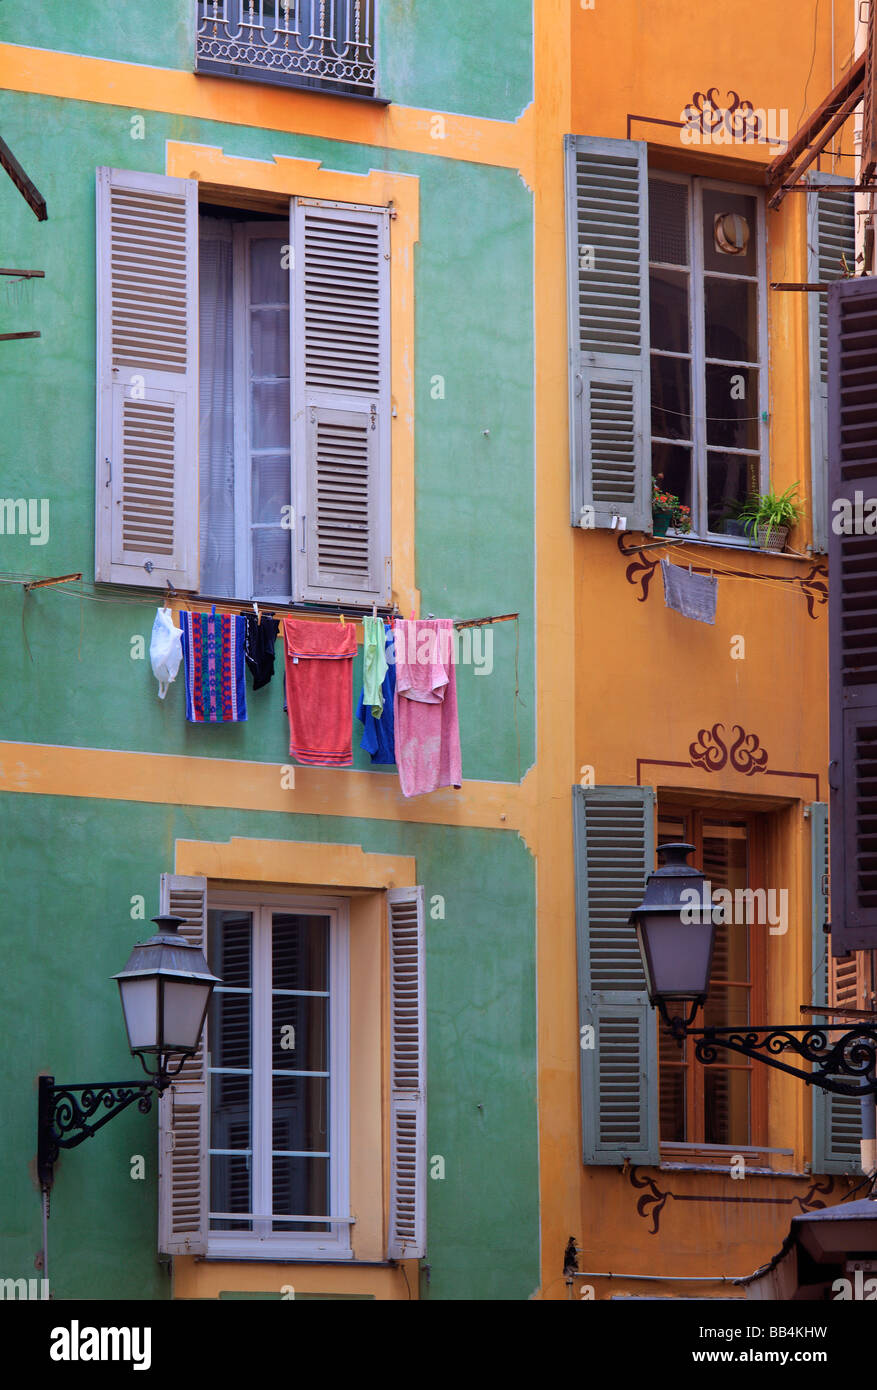 Typical French windows in the 'Vielle Ville' part of Nice, France - Stock Image